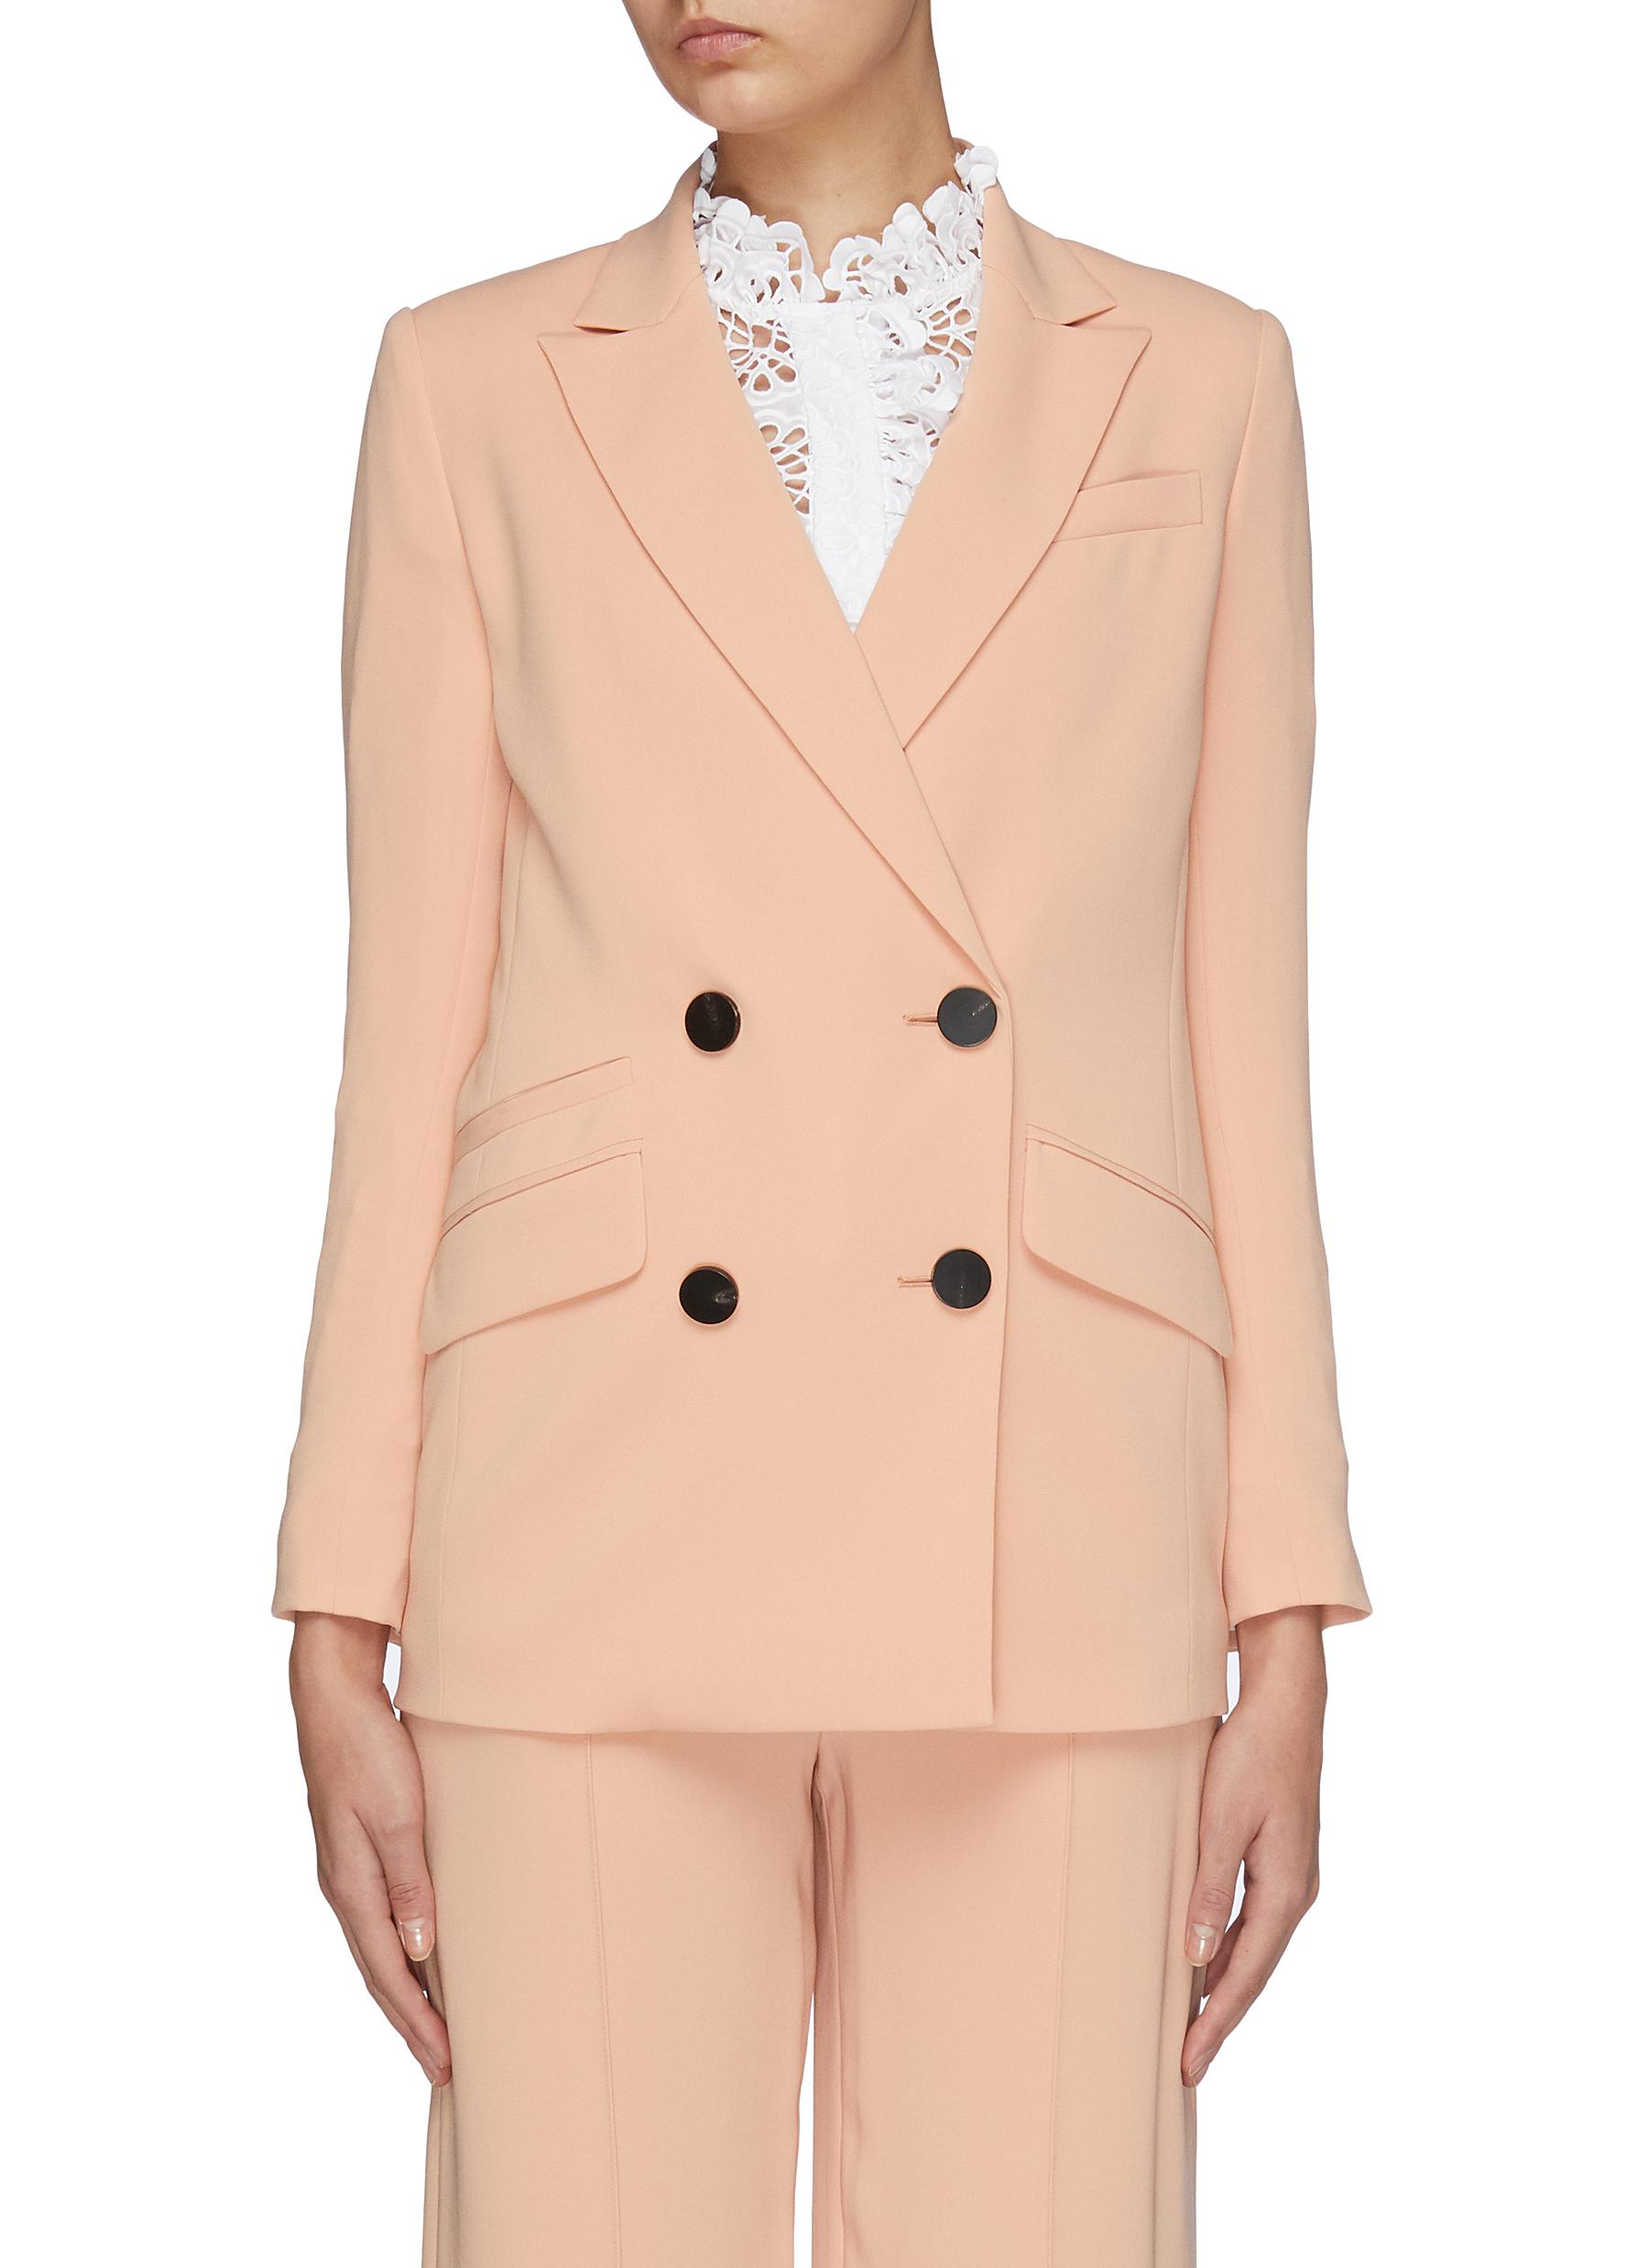 Madison peaked lapel double breasted blazer by Diane Von Furstenberg